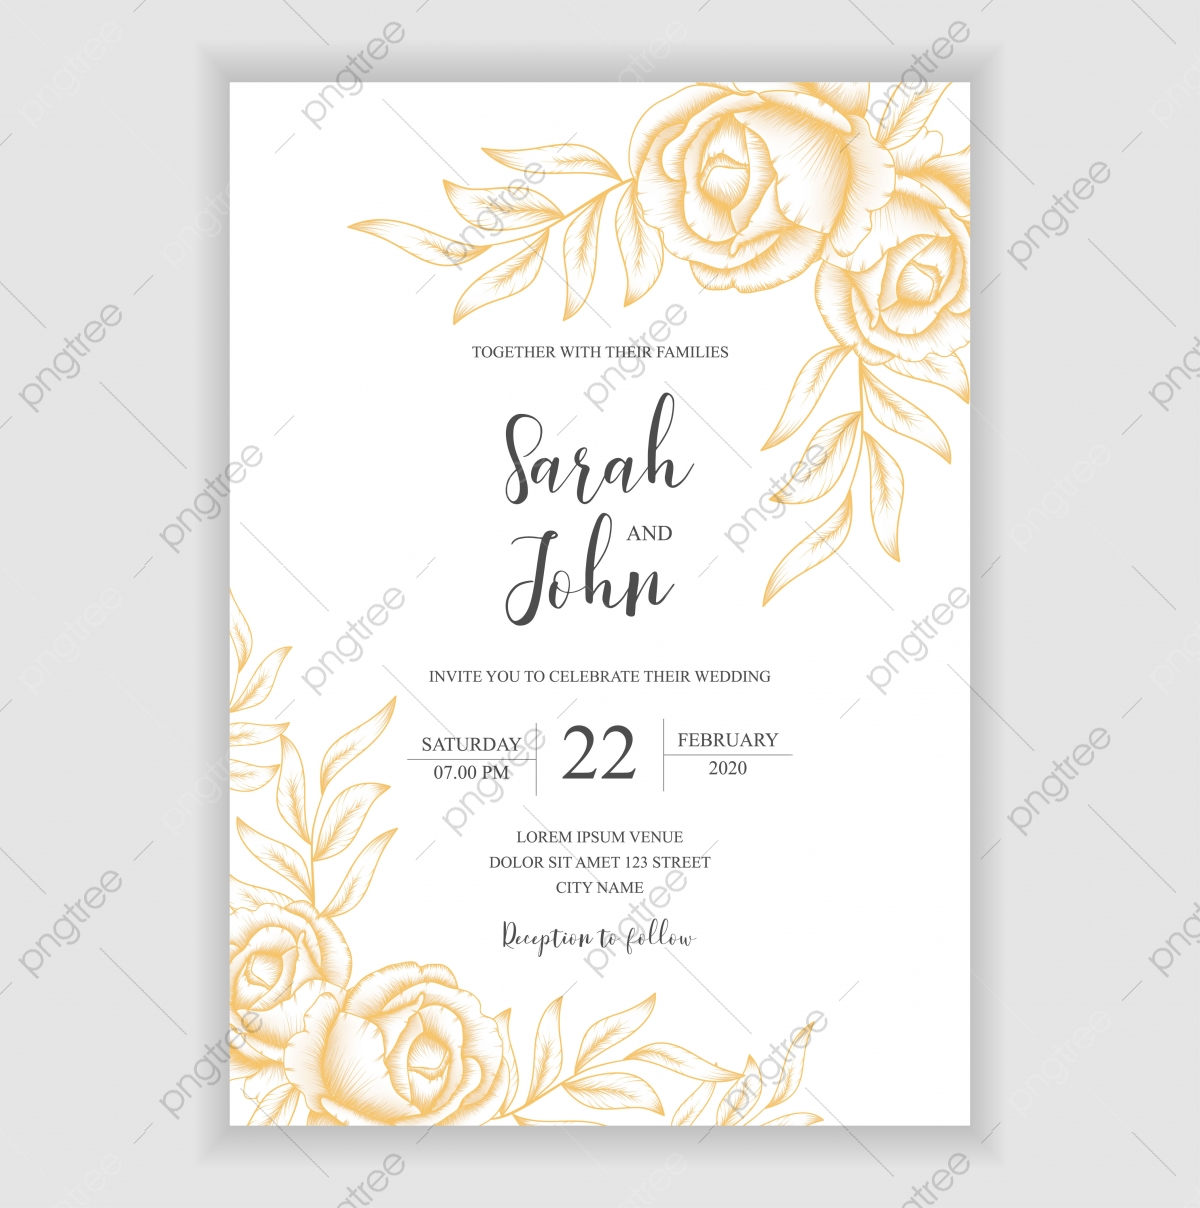 vintage wedding invitation png vector psd and clipart with transparent background for free download pngtree https pngtree com freepng floral vintage wedding invitation template with bouquet decoration 4835460 html